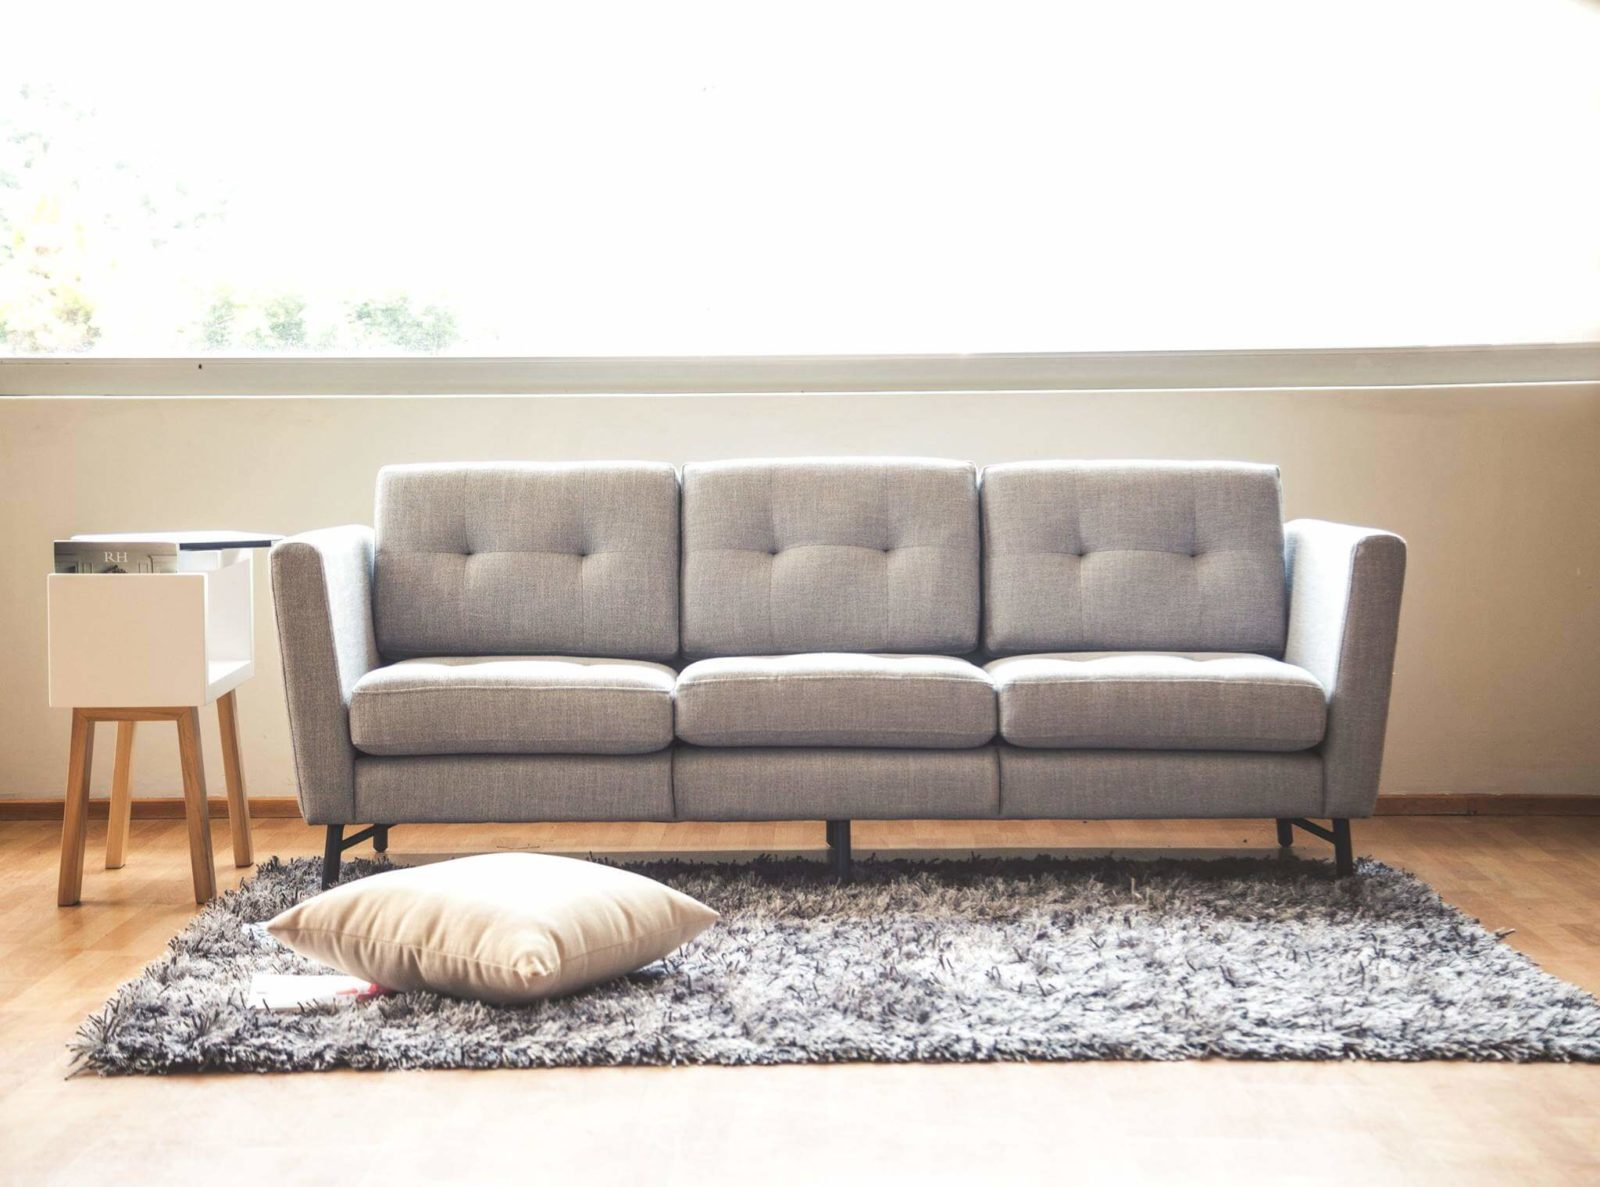 Sofa In A Box Companies Burrow Couch In A Box Review Updated Read This Before You Order